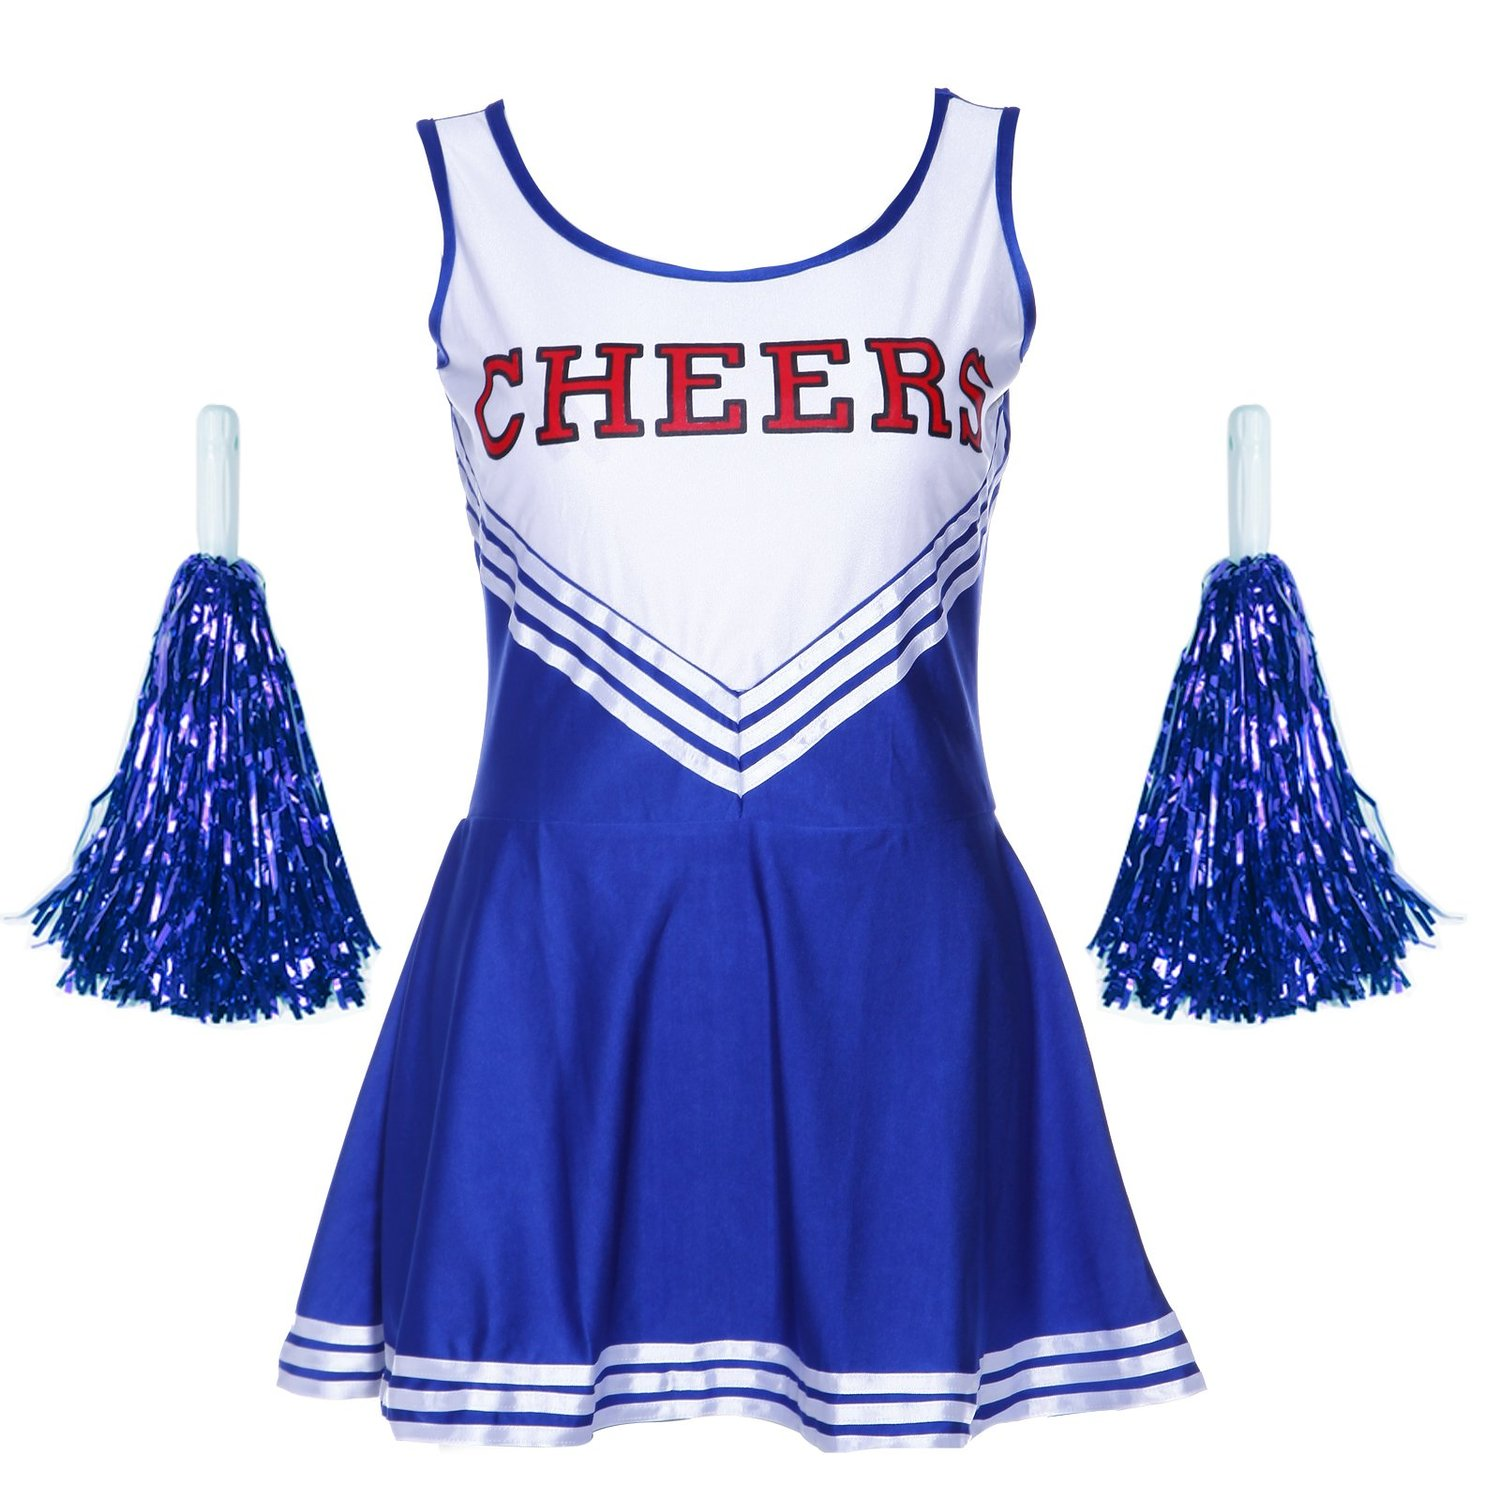 LGFM-Pom-pom girl tank top dress cheer leader blue suit costume XL (42-44) school football